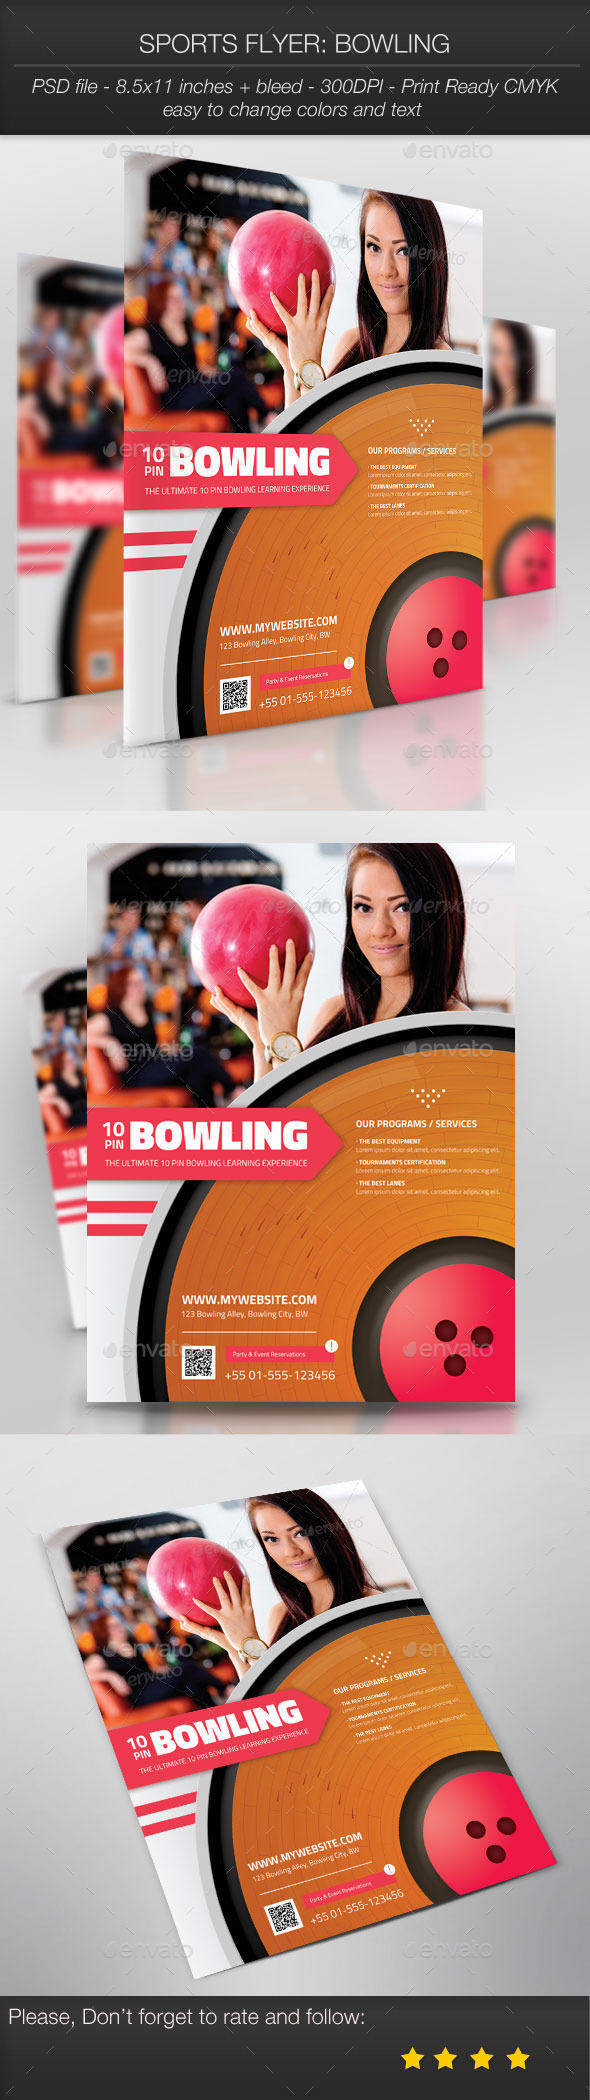 Sports Flyer Bowling - Sports Events